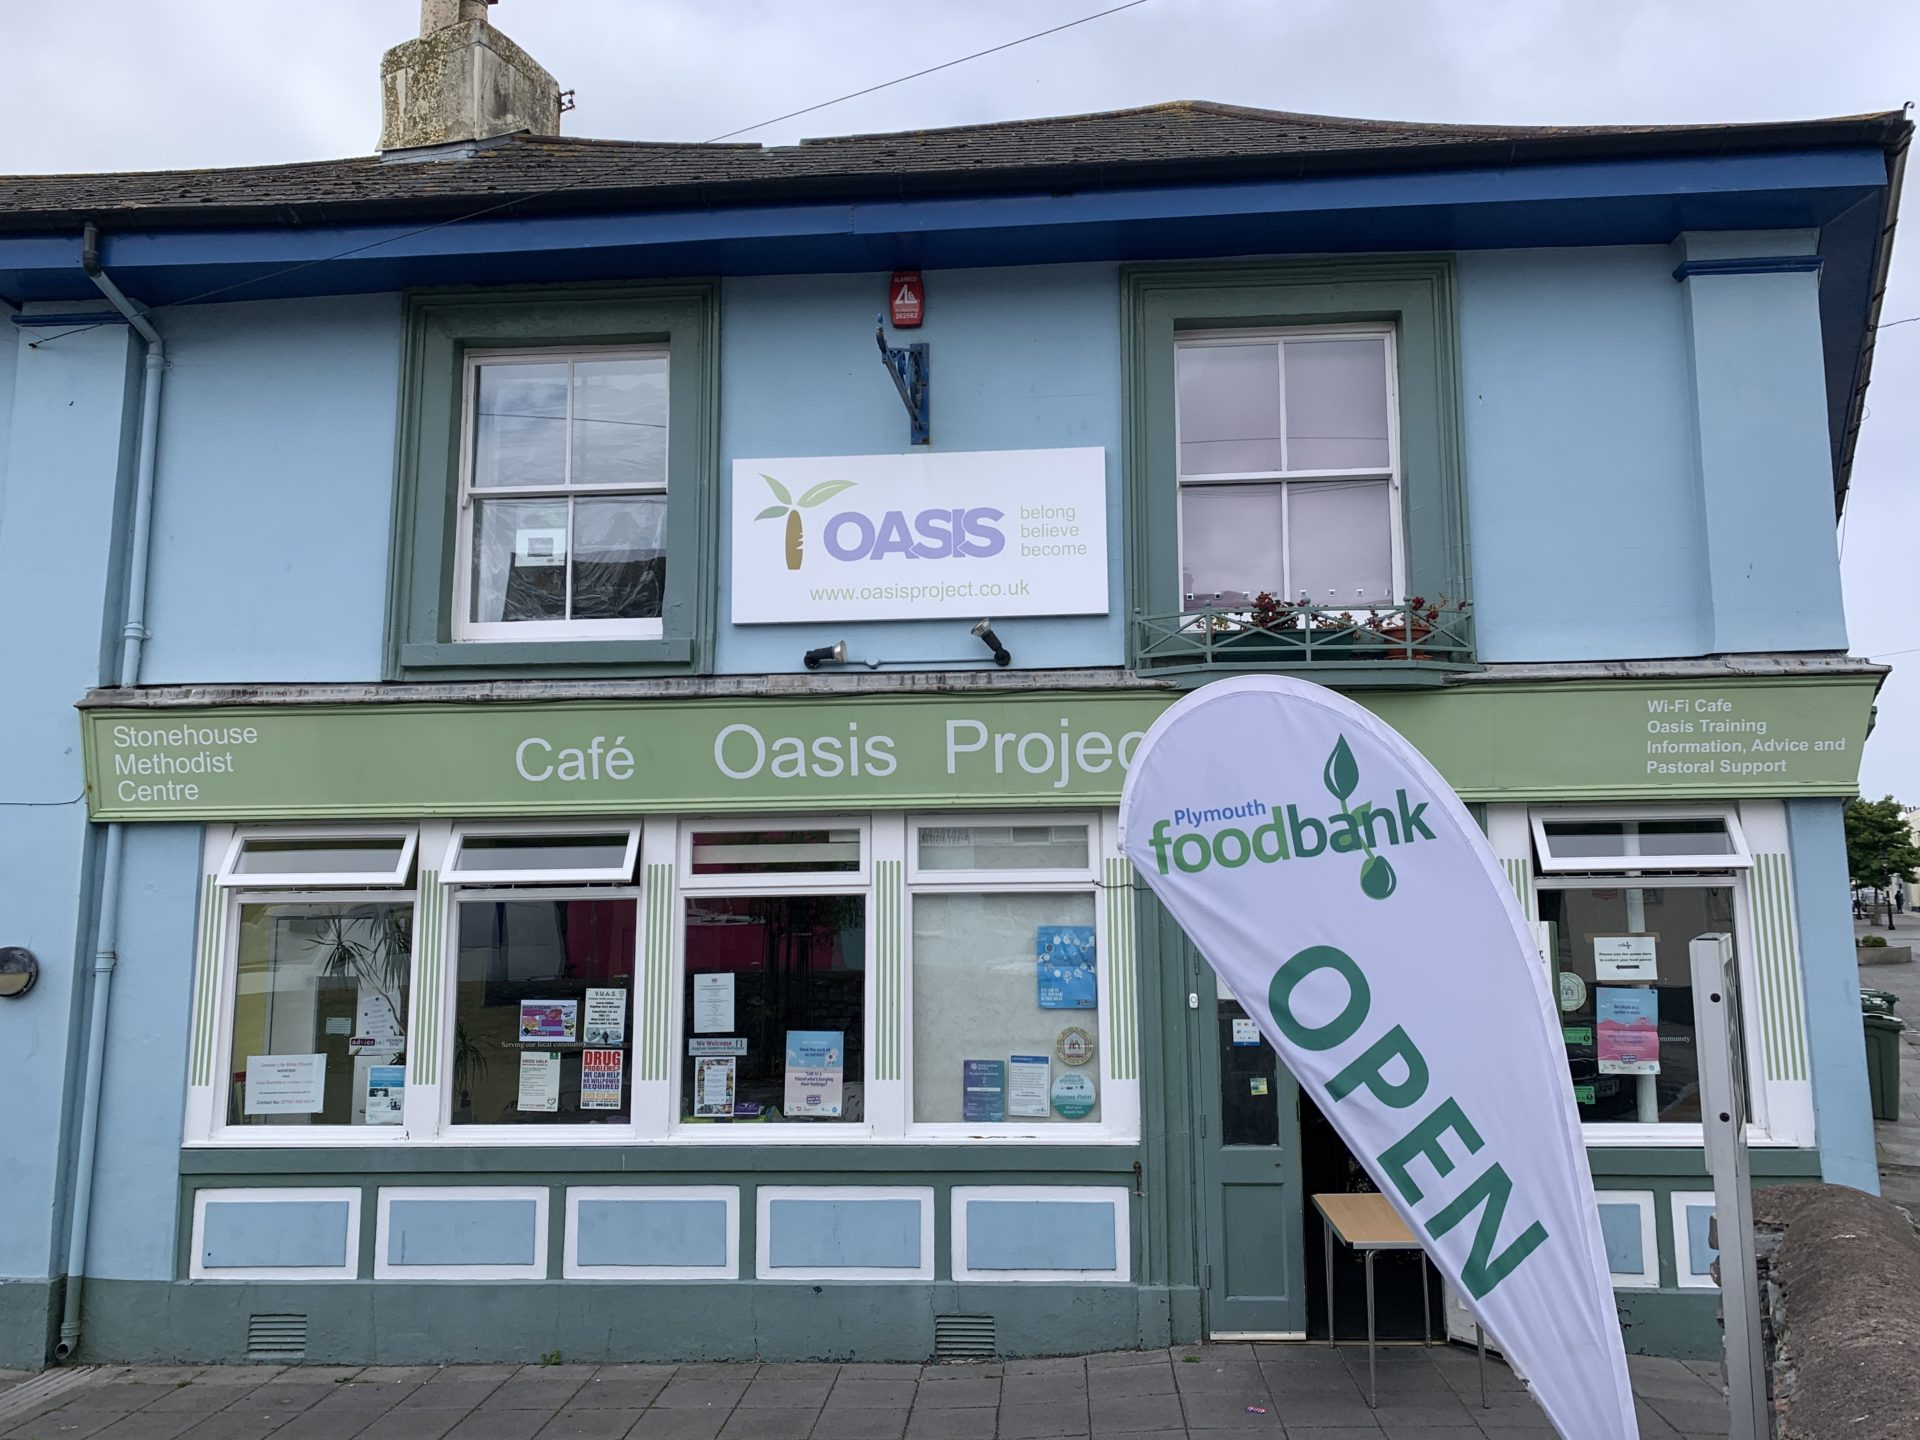 oasis project plymouth foodbank